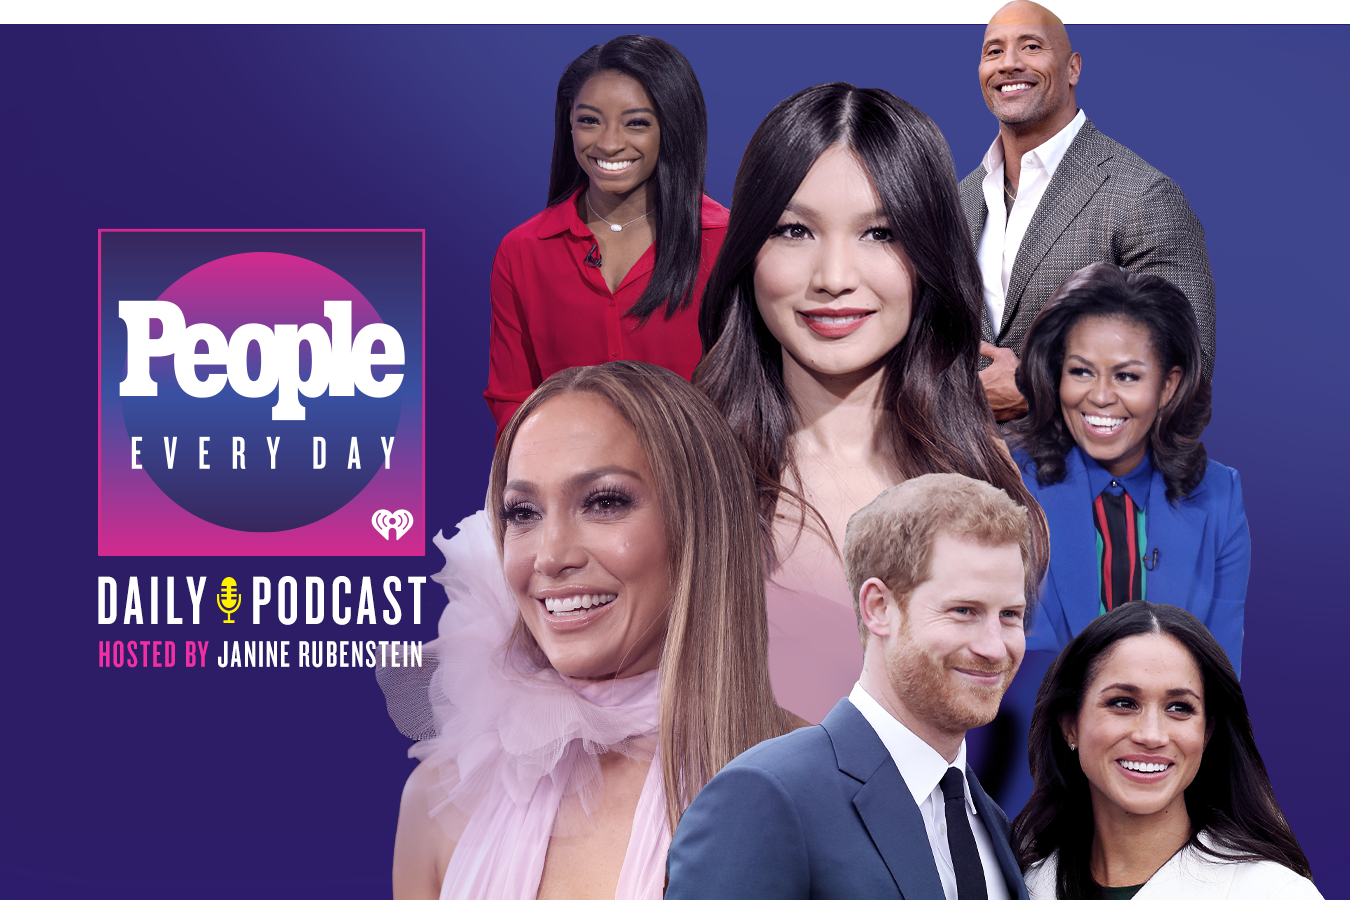 People Every Day podcast image